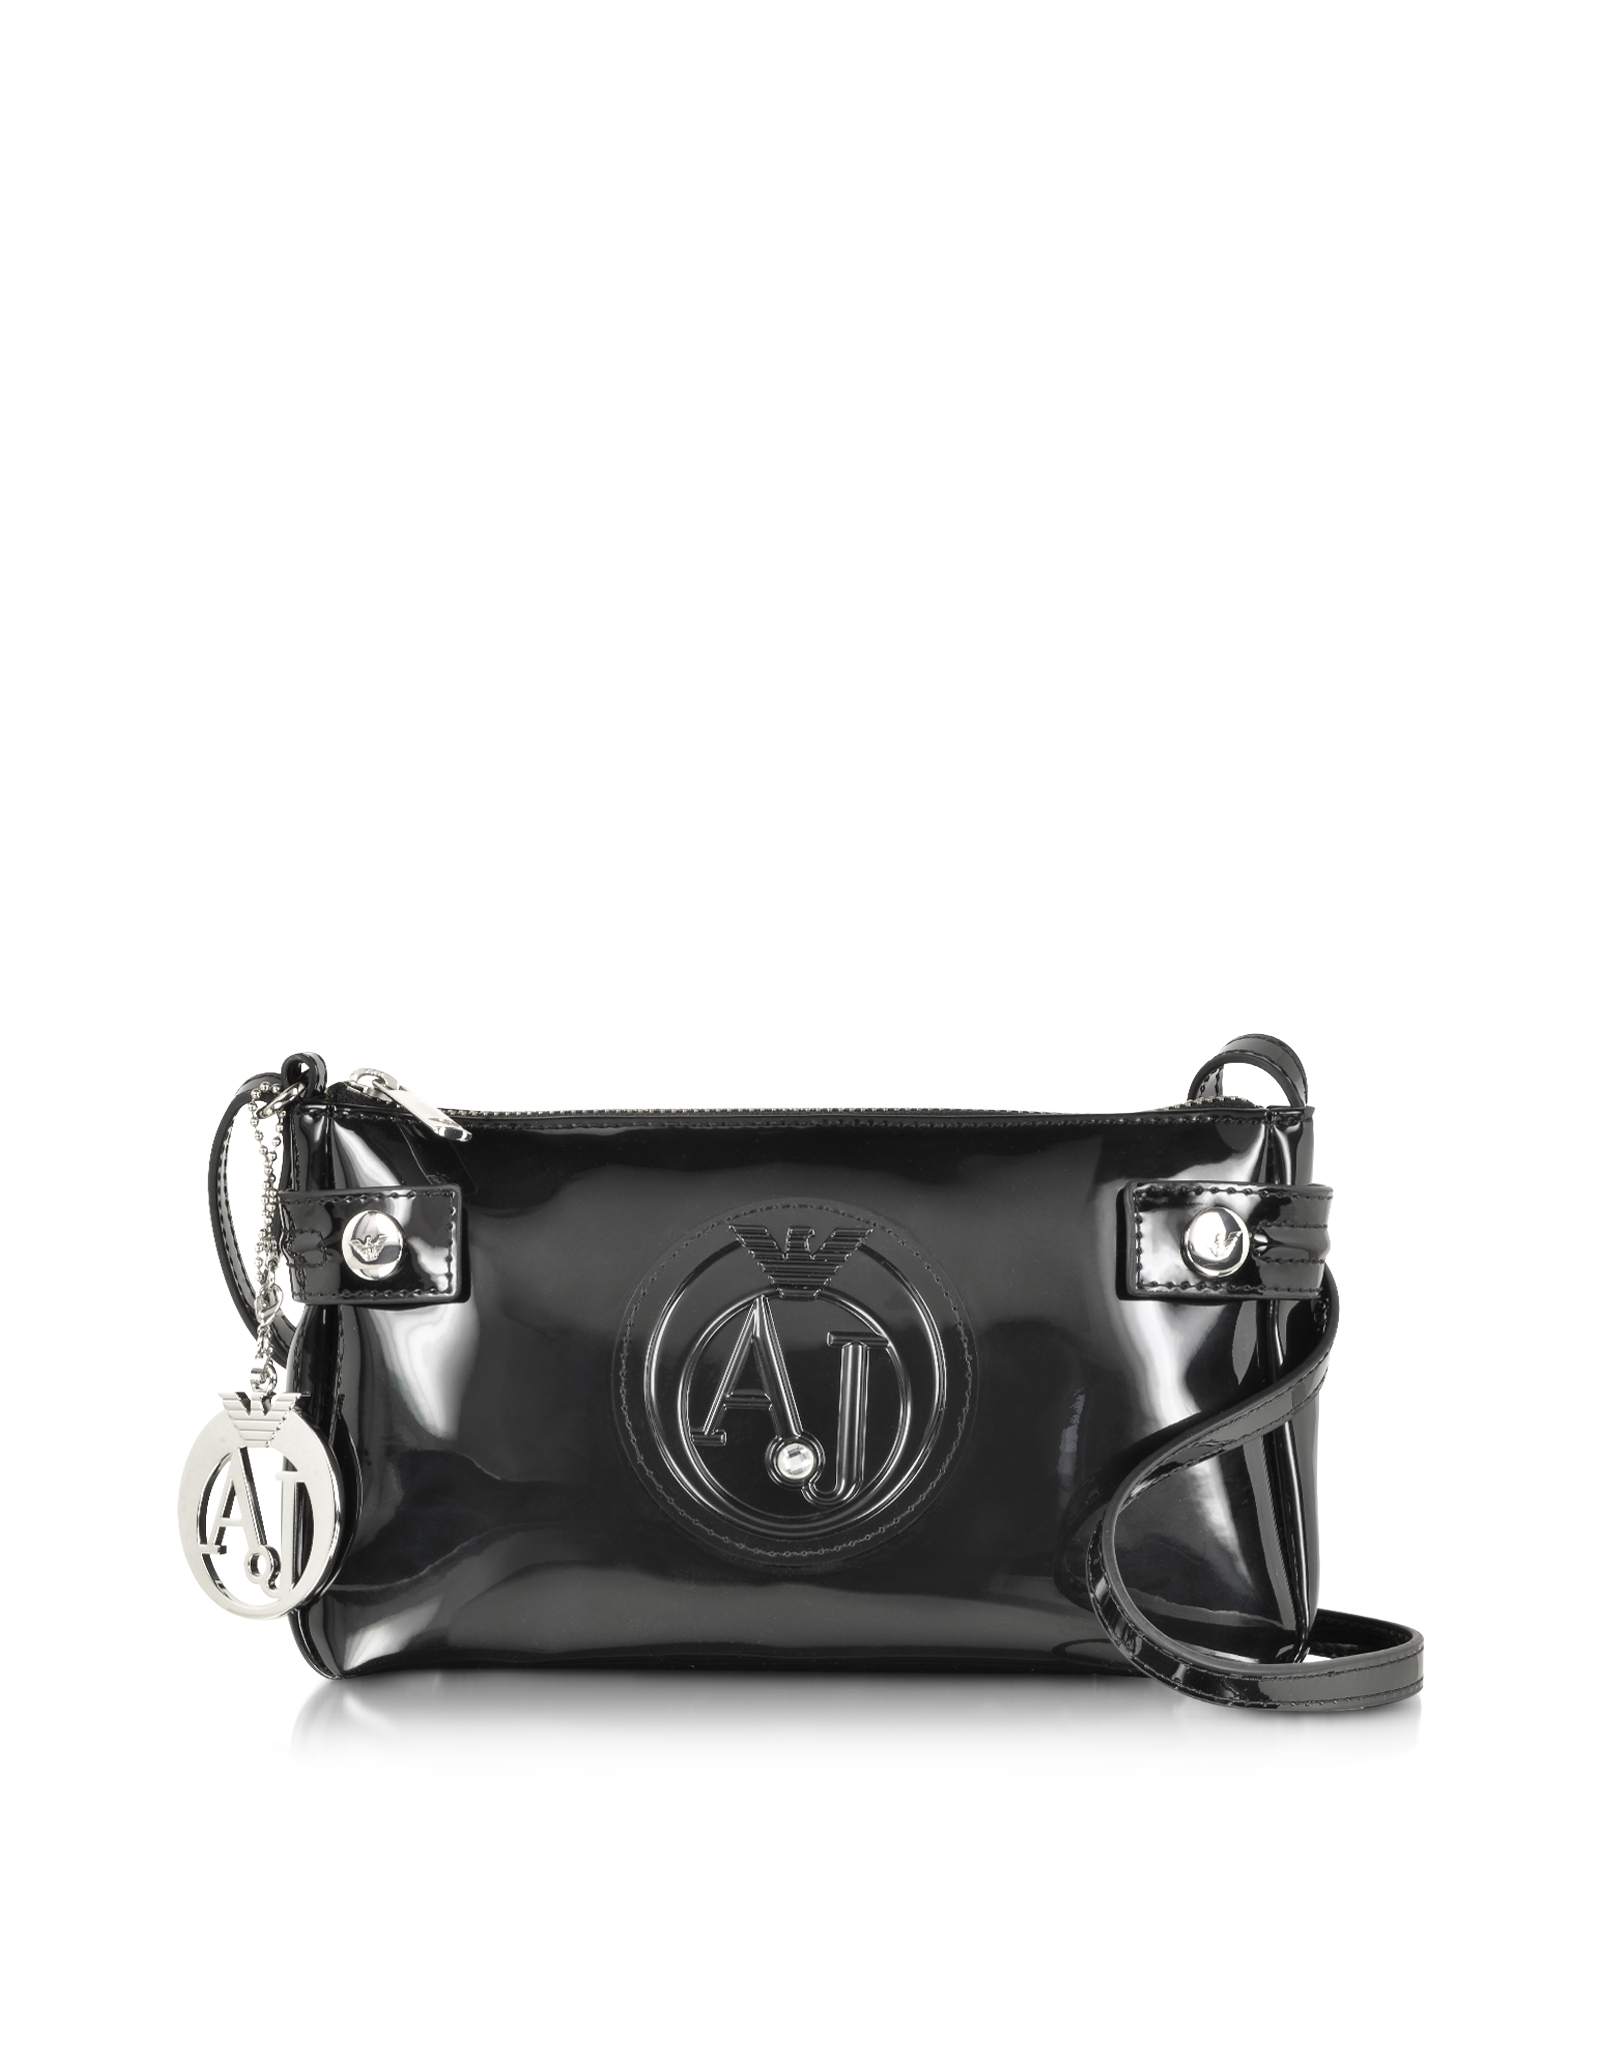 a044a5448b Lyst - Armani Jeans Patent Faux Leather Baguette Crossbody in Black